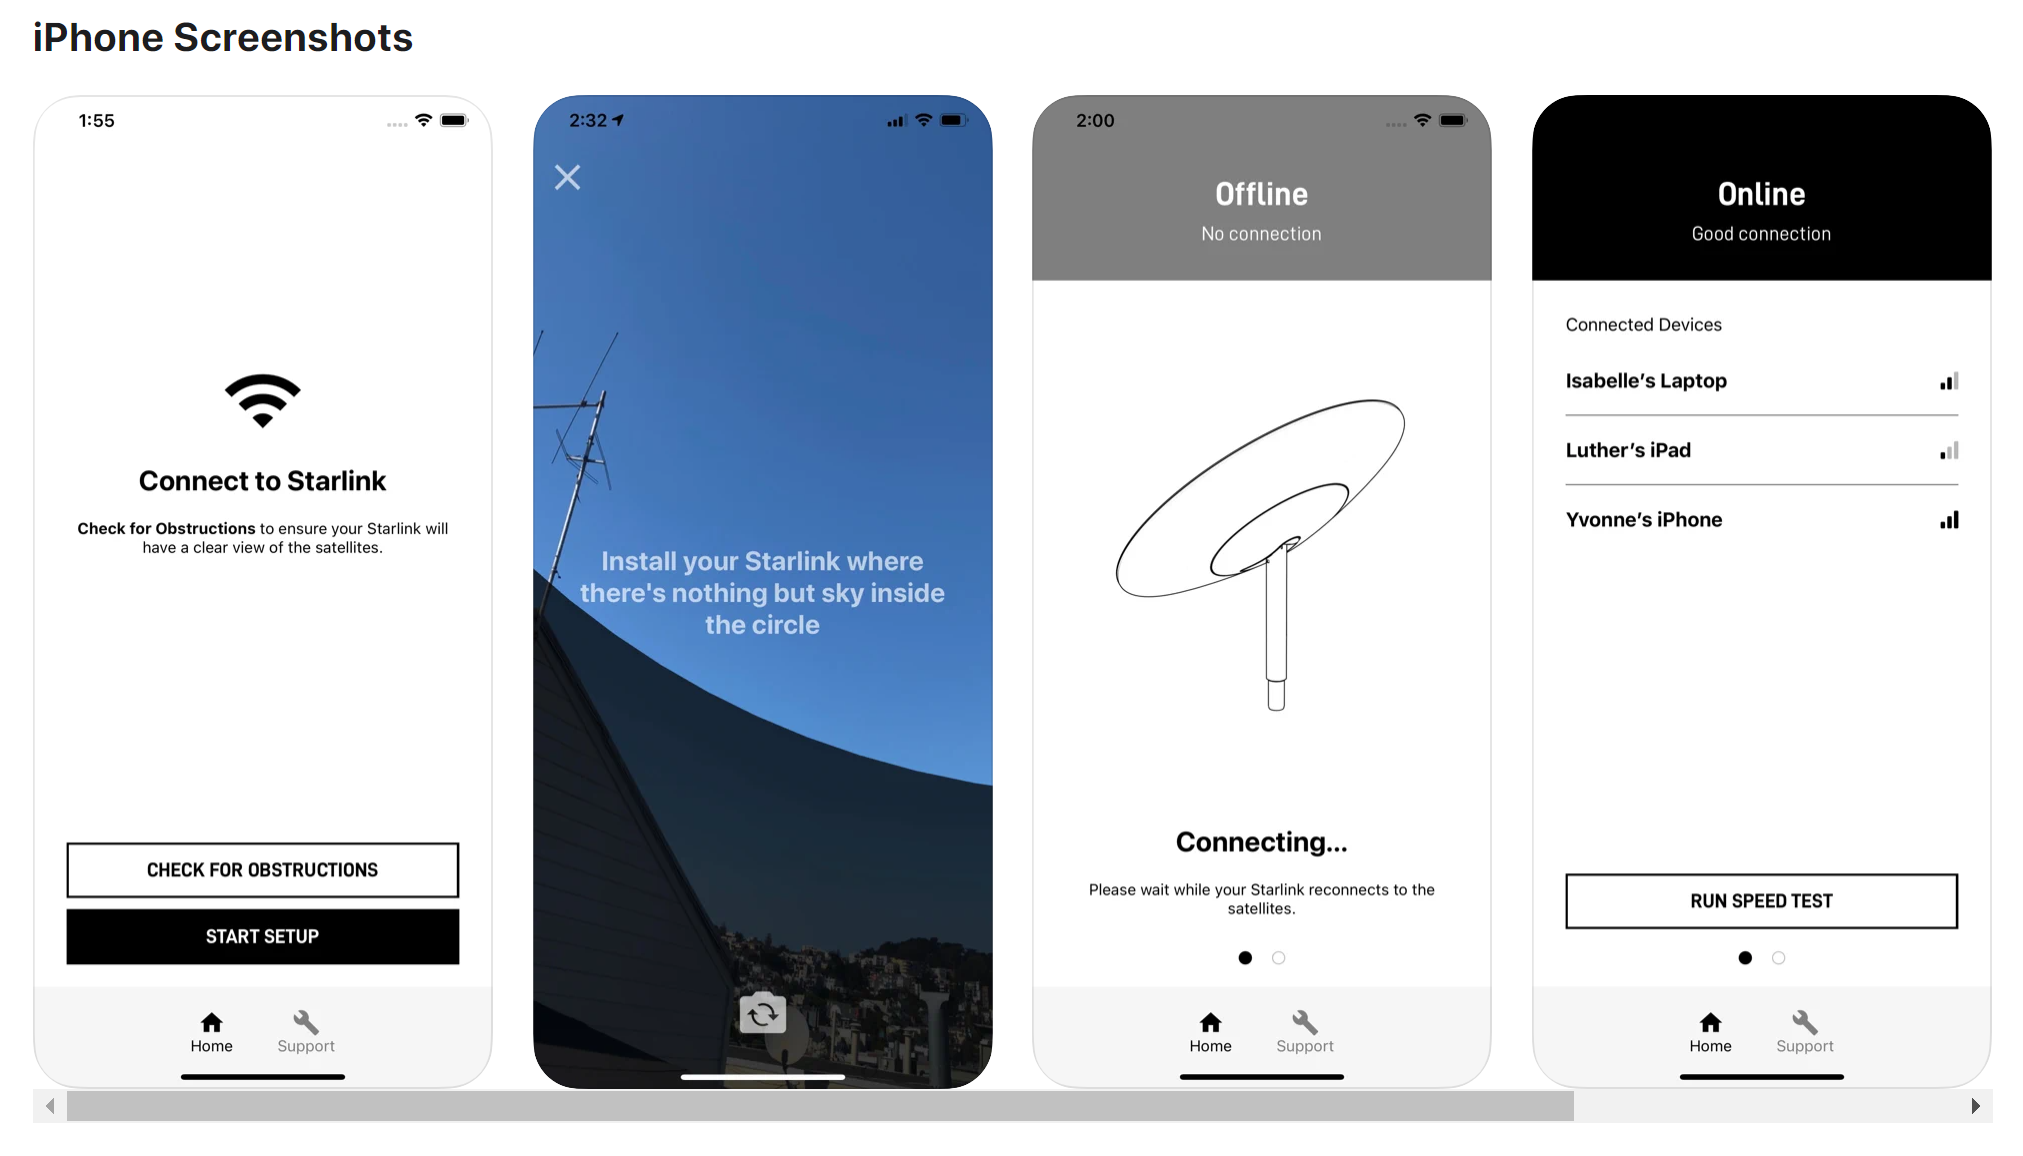 Starlink iOS app Oct 2020 (SpaceX) 1